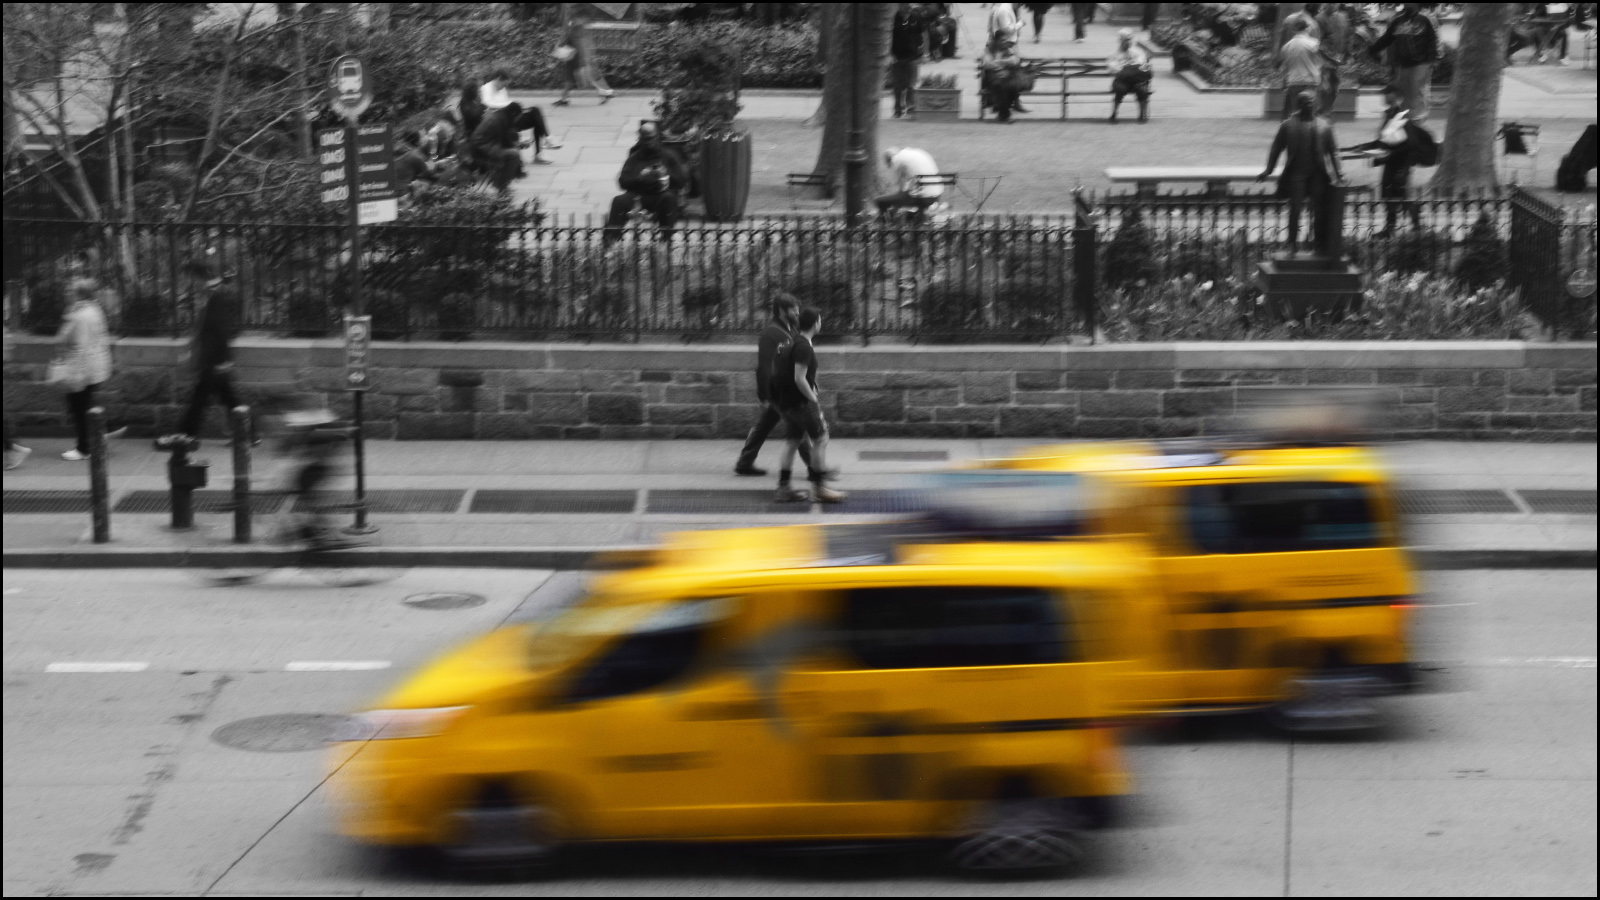 motion blur in nyc taxi cab yellow (c) mark somple 2019